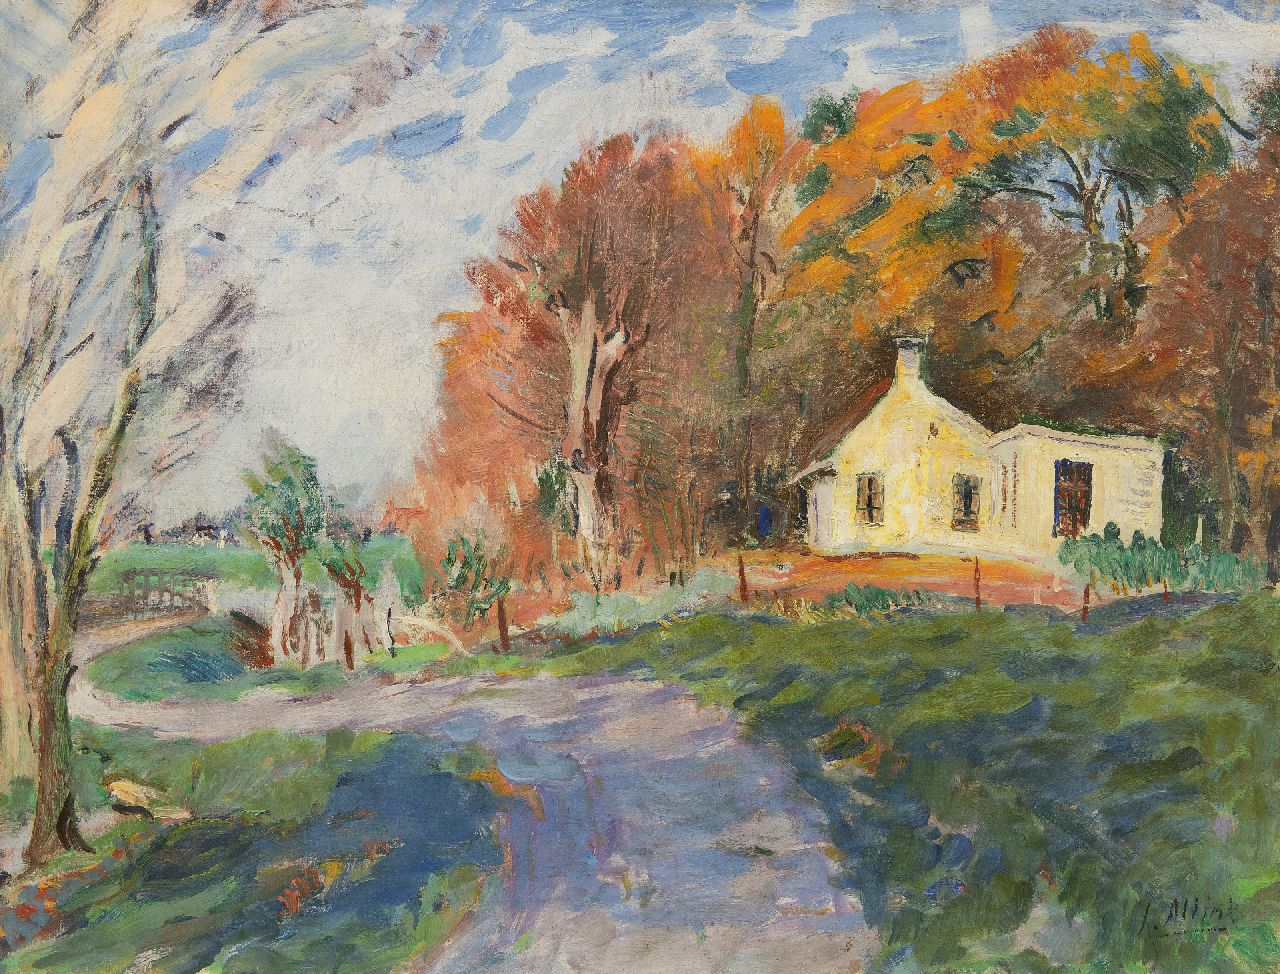 Altink J.  | Jan Altink | Paintings offered for sale | Landscape with a house, oil on canvas 60.3 x 78.0 cm, signed l.r.